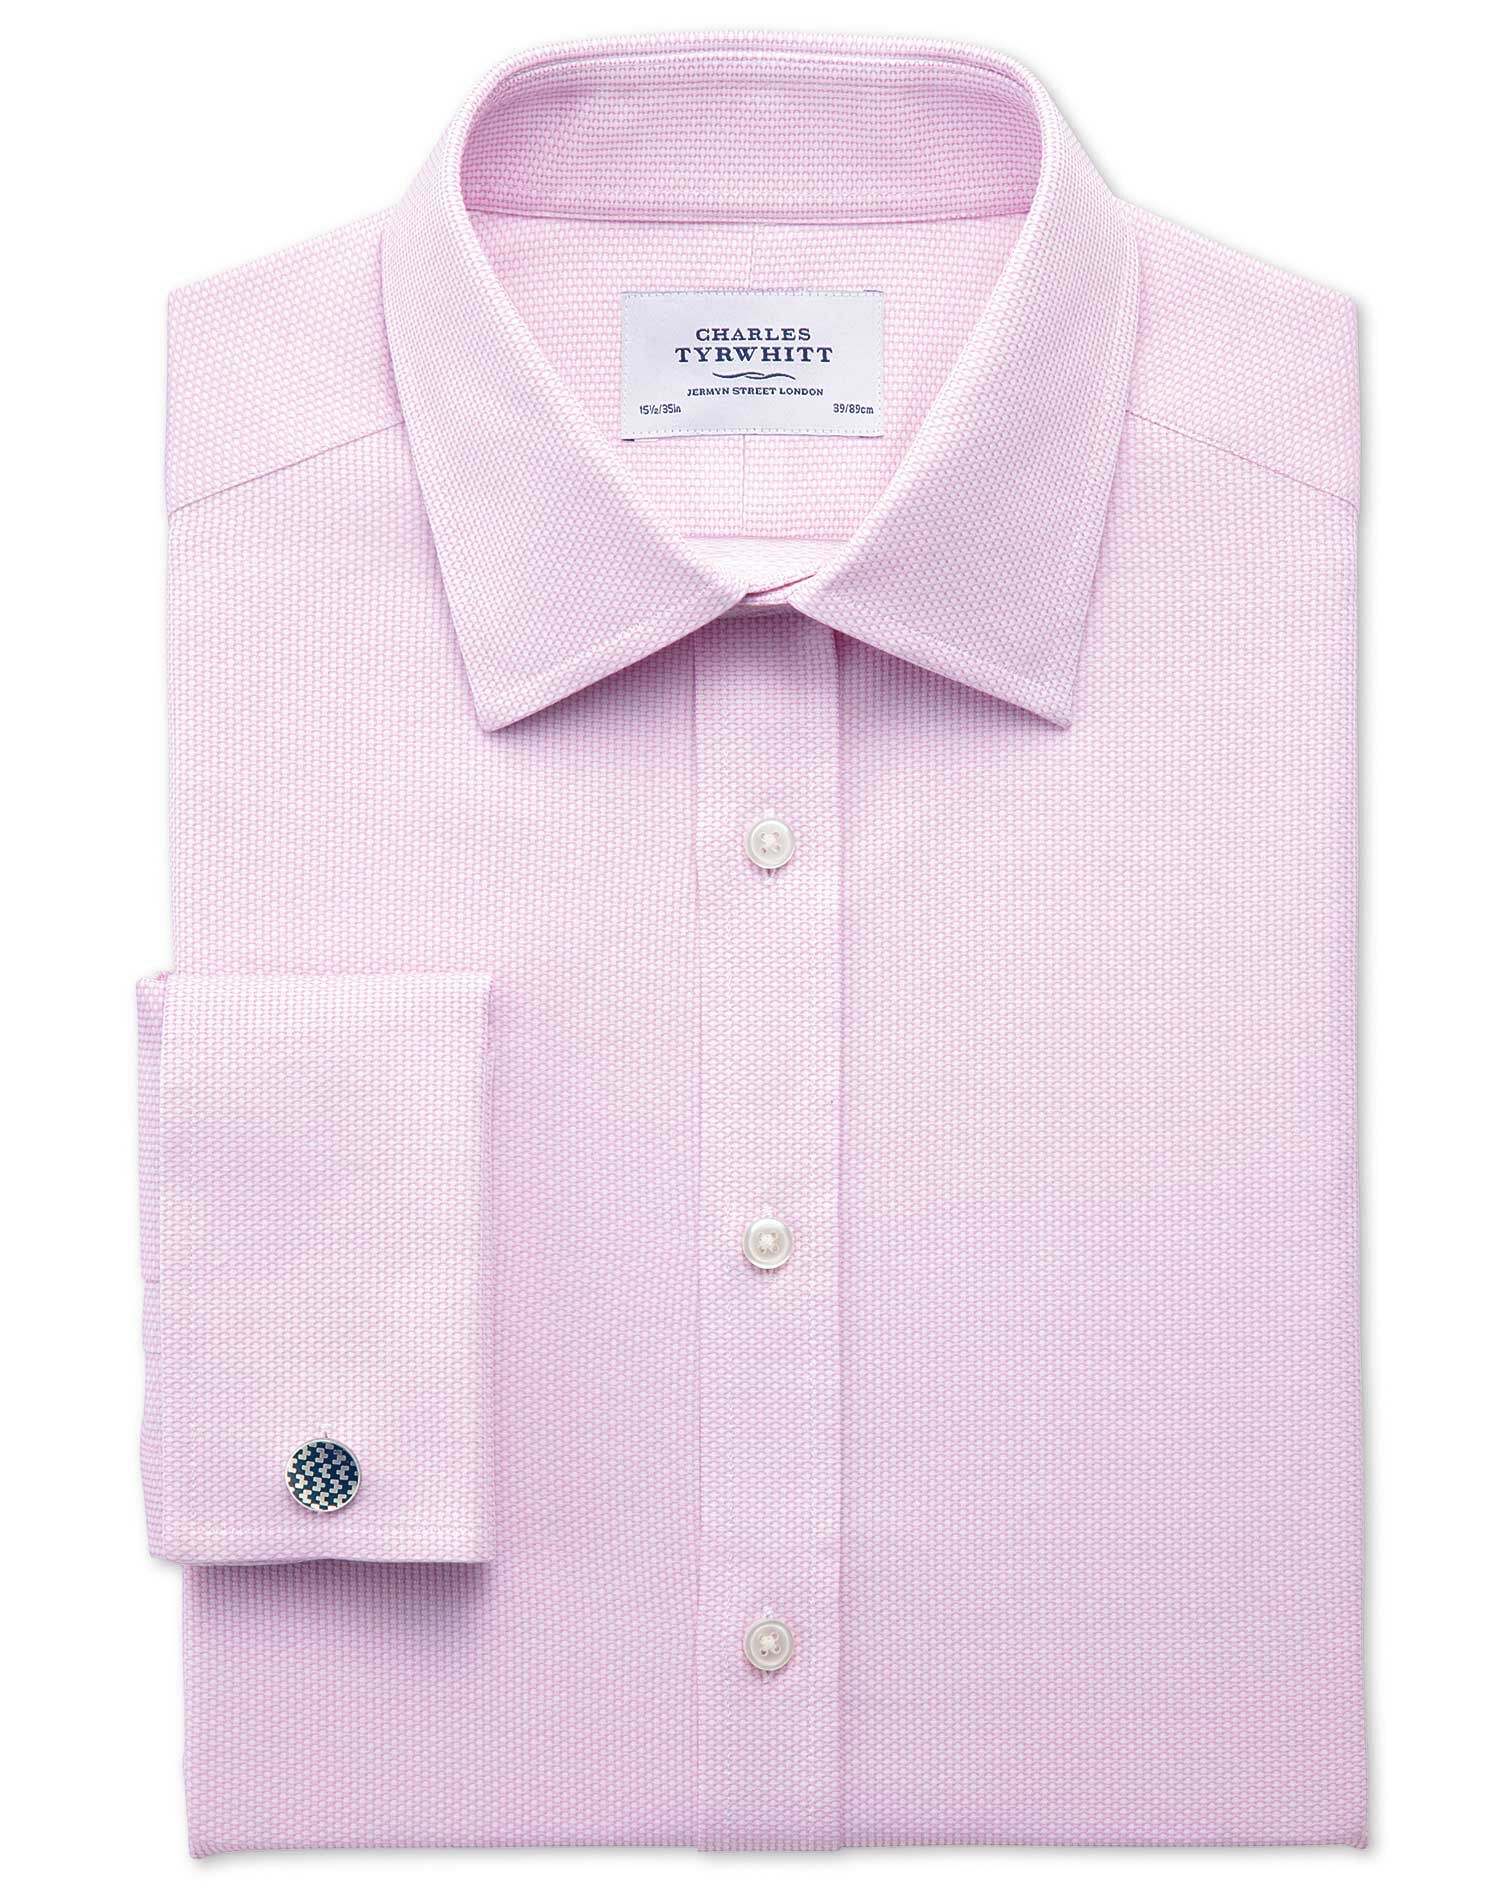 Classic Fit Egyptian Cotton Diamond Texture Pink Formal Shirt Single Cuff Size 16/34 by Charles Tyrw